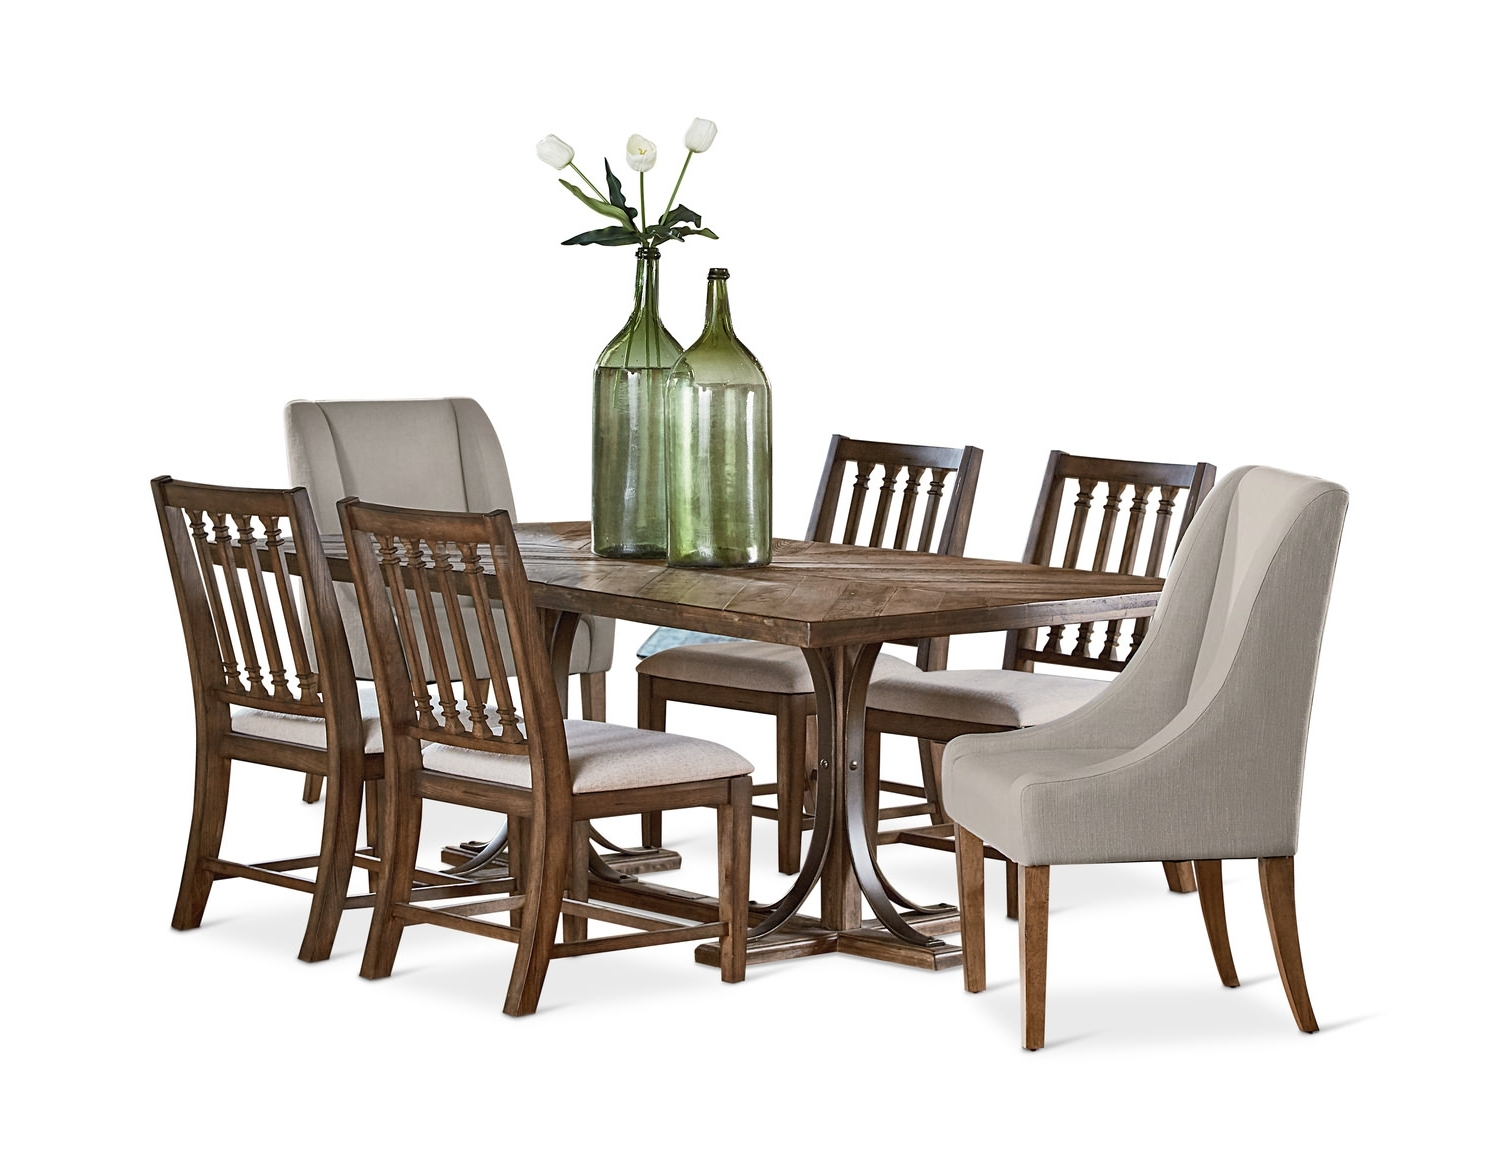 Widely Used Trestle Dining Table And 4 Revival Side (View 25 of 25)